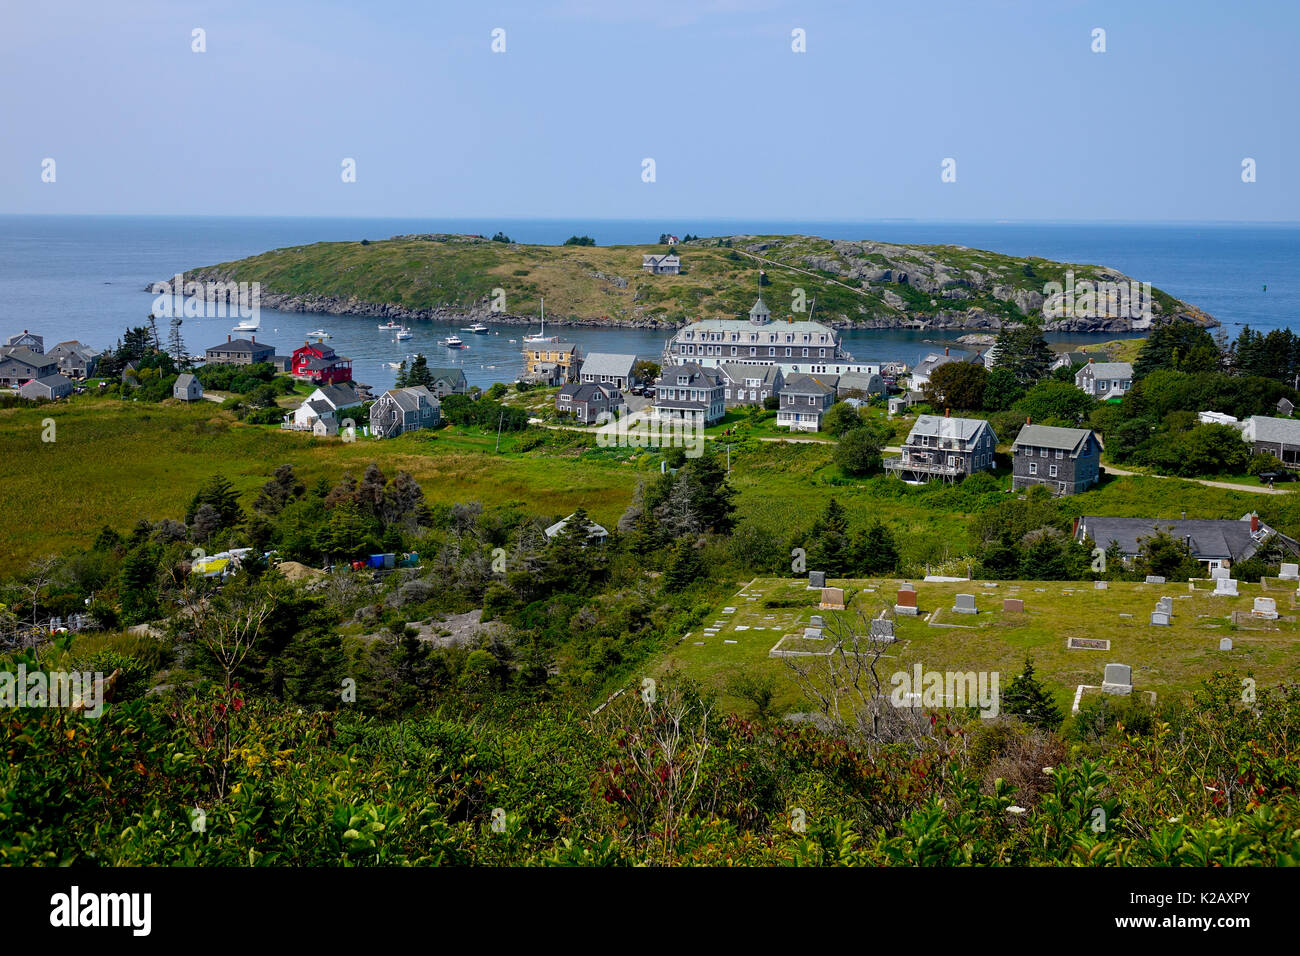 usa-maine-me-monhegan-island-view-of-center-of-town-from-the-lighthouse-K2AXPY.jpg